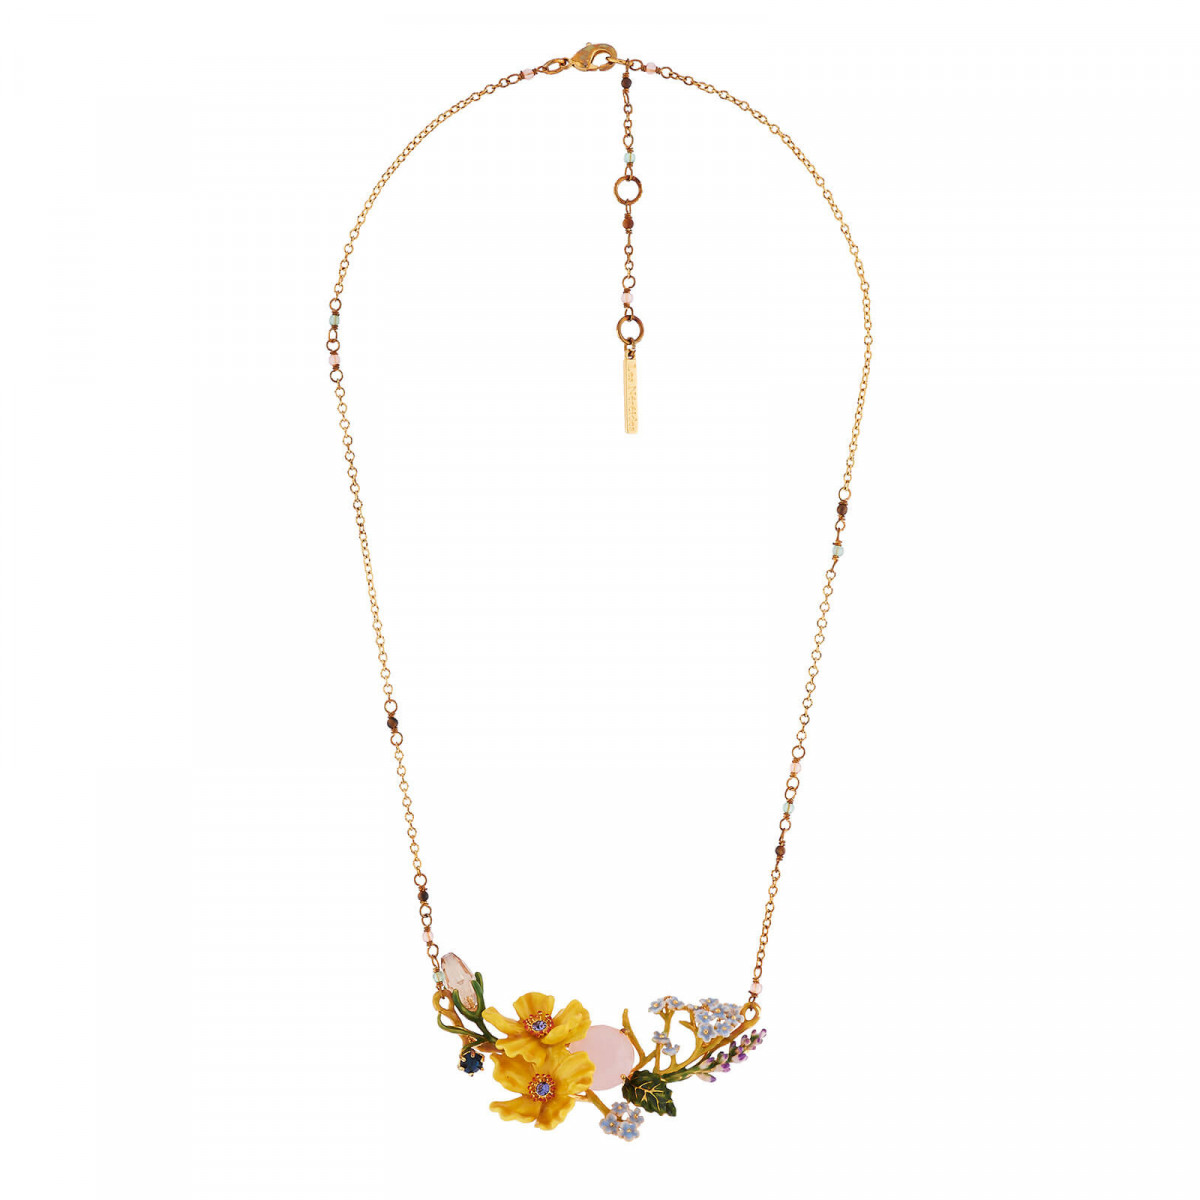 Necklace Yellow Flowers And Faceted Crystals On A Flowering Branch